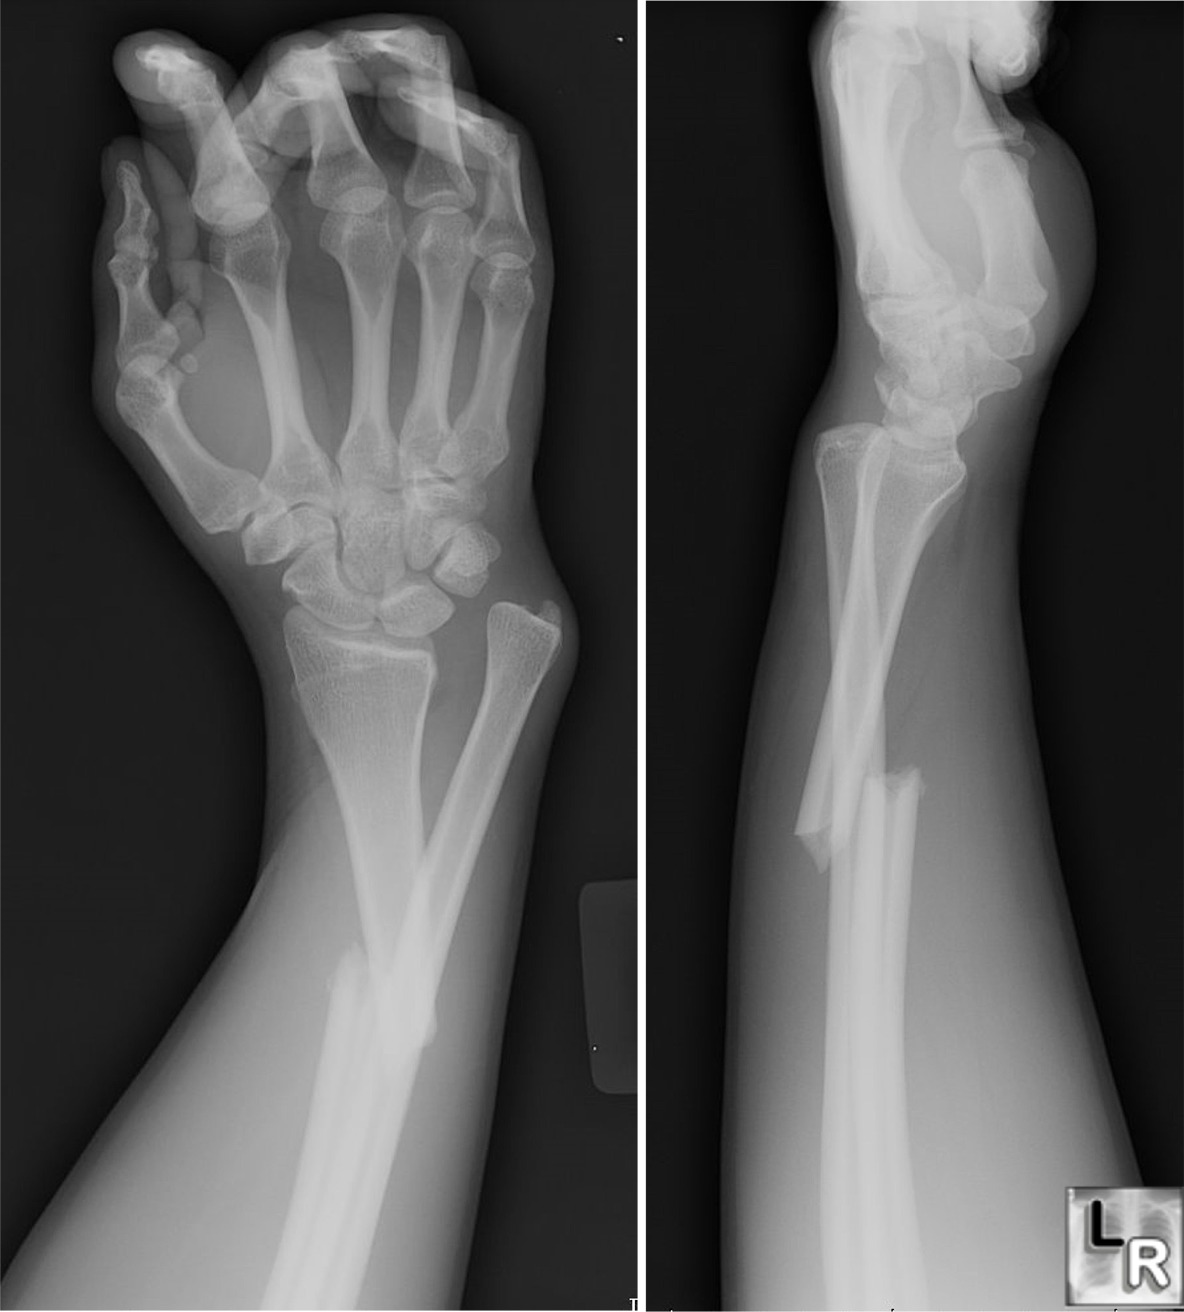 Galeazzi Fracture Consists Of A Fracture Of The Radius With Angulation